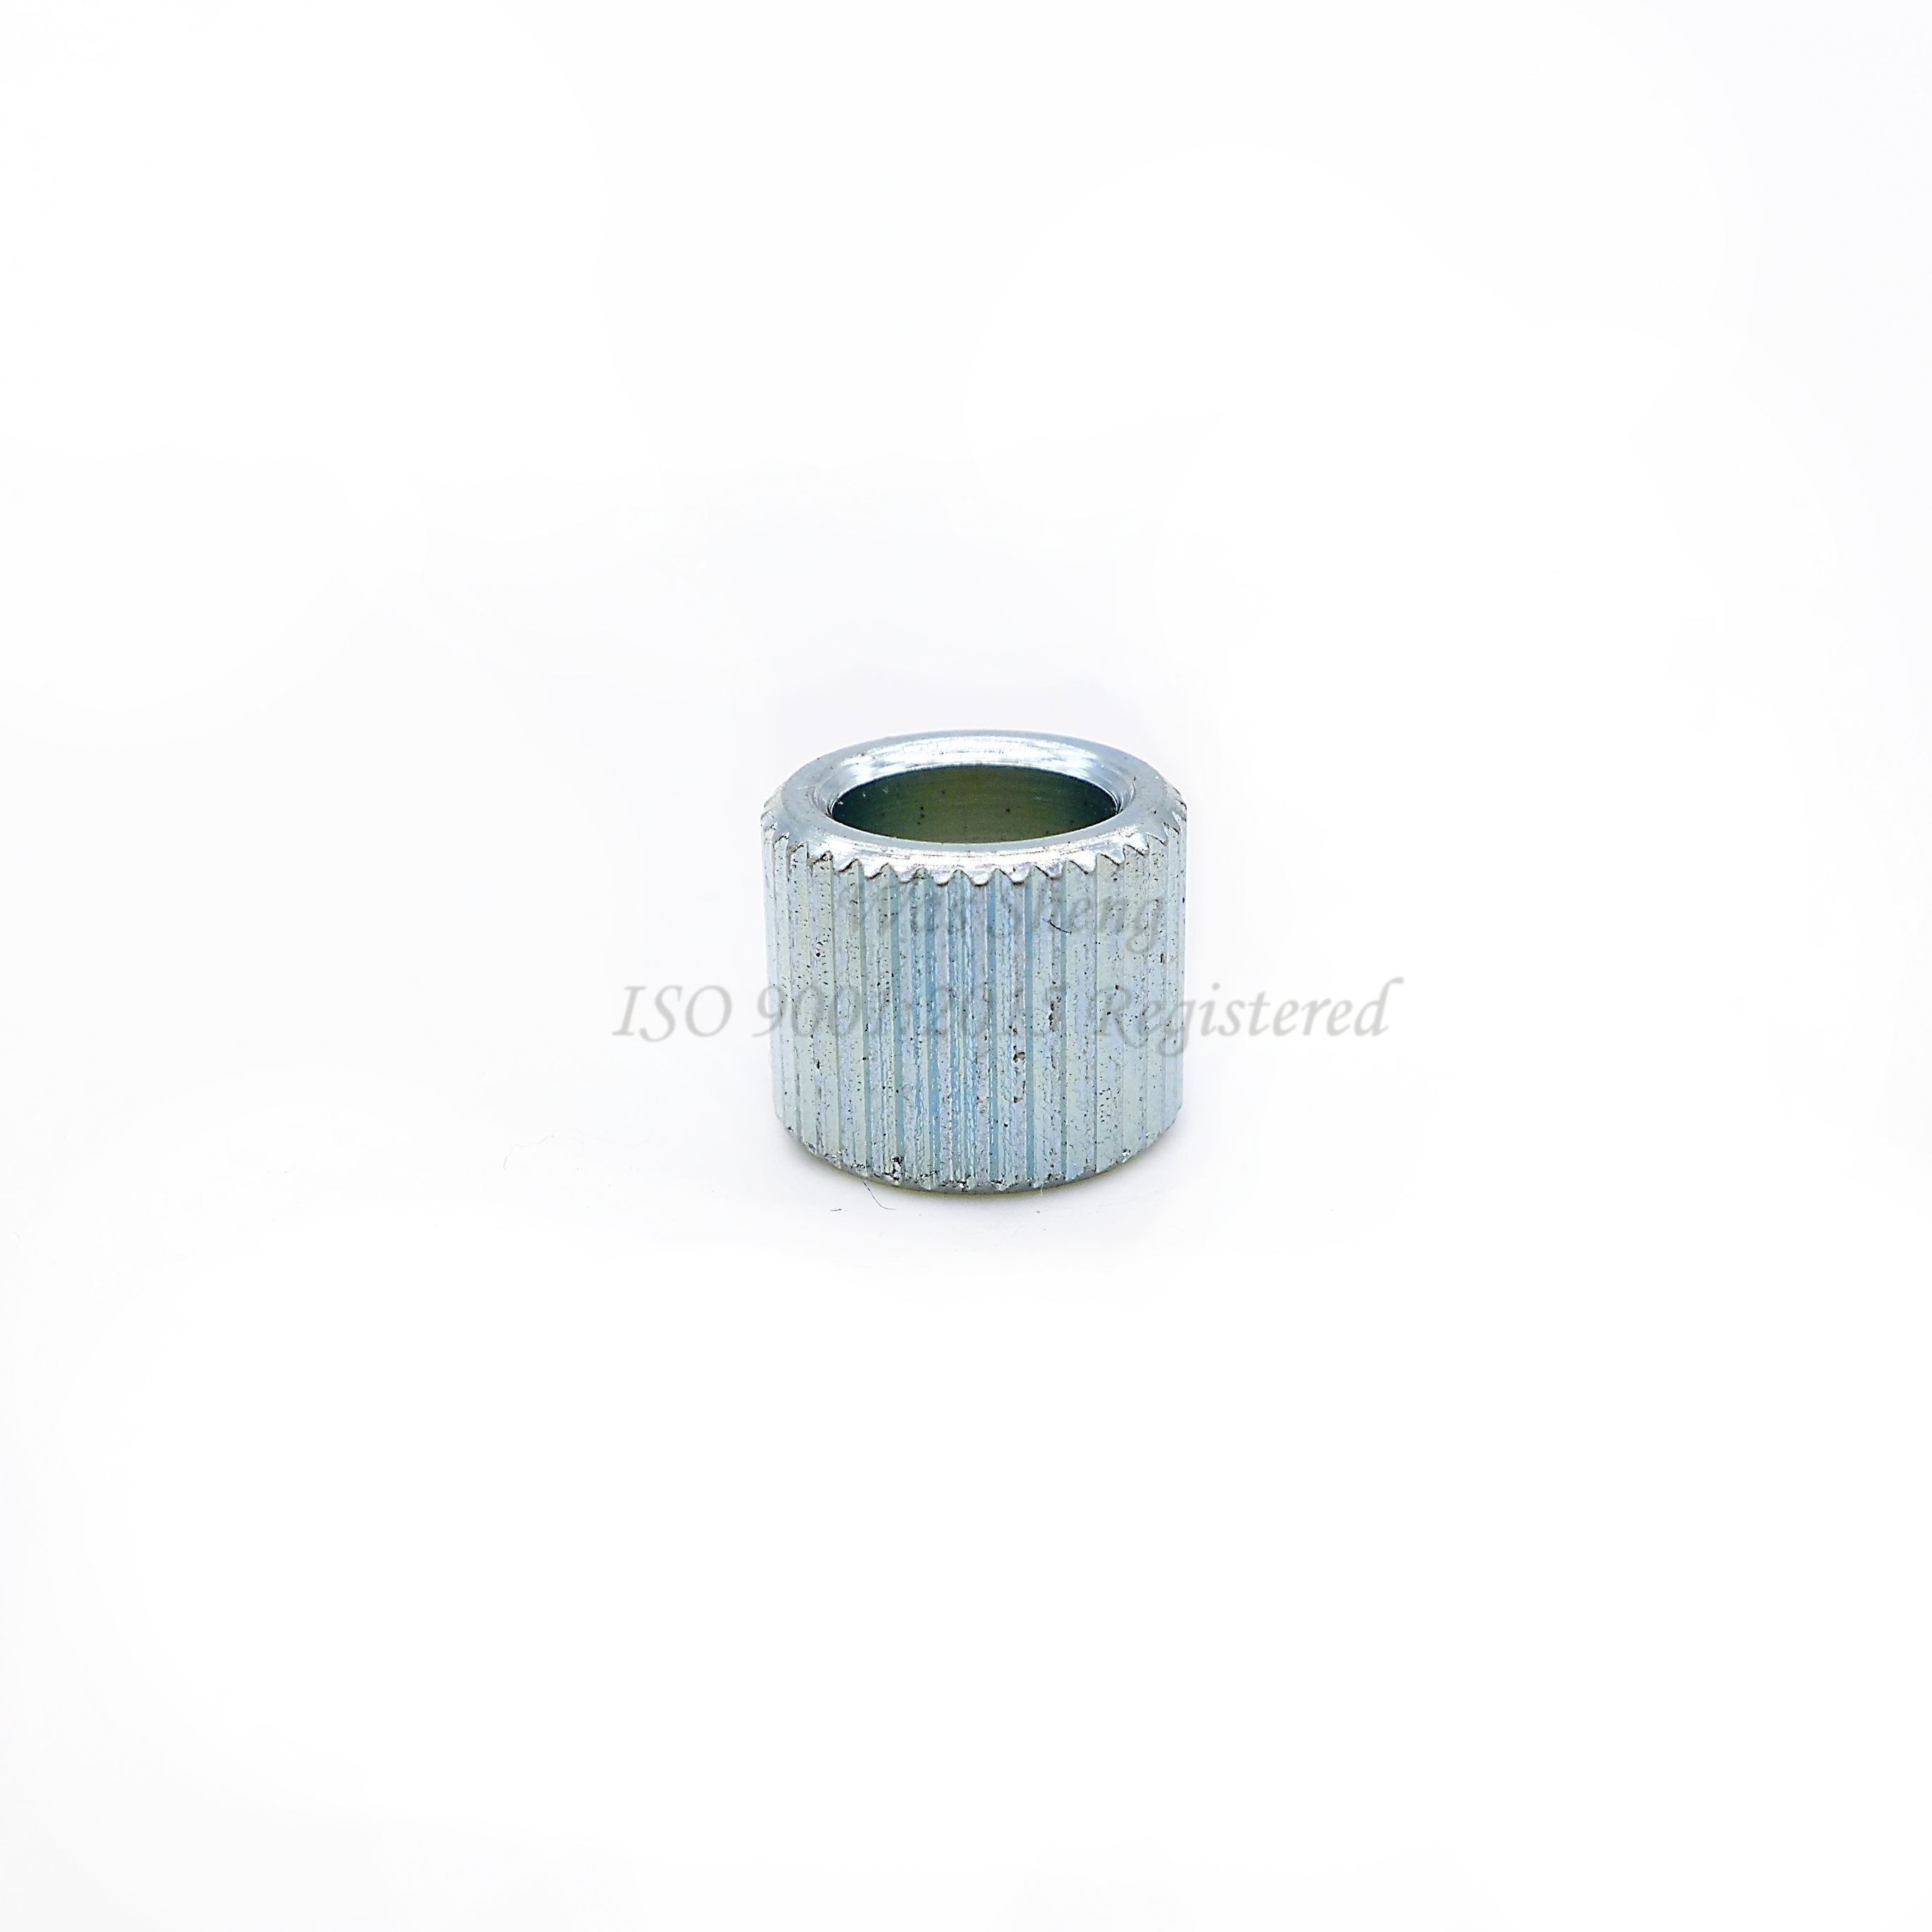 Spacer Standoff Straight Knurled Collar Zinc Plating